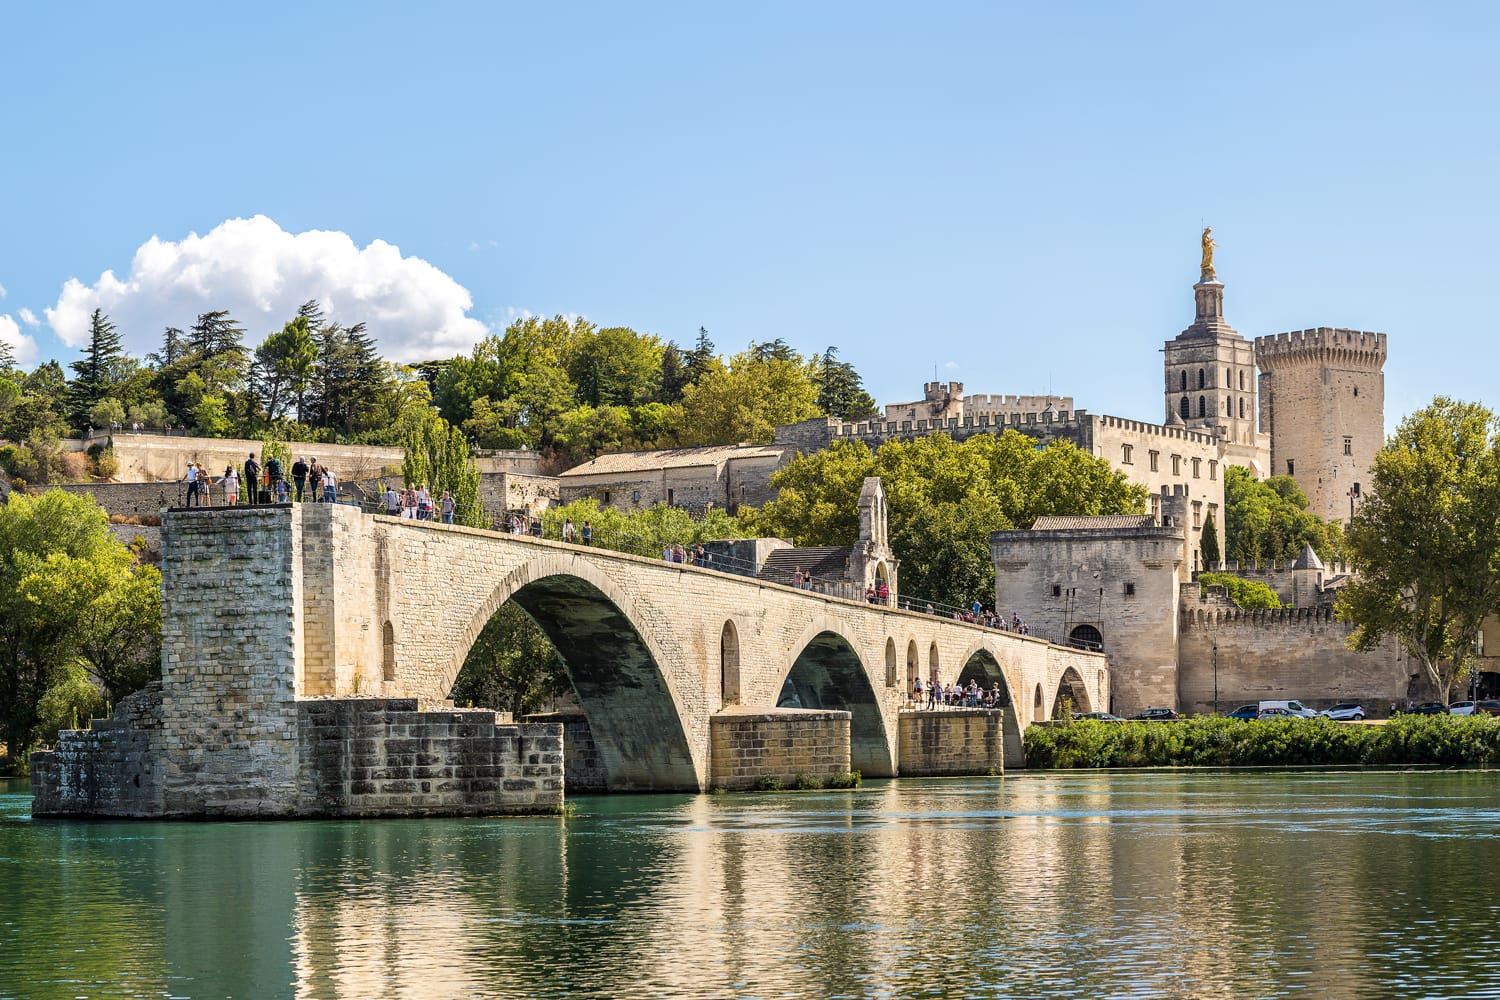 Saint Benezet bridge in Avignon, France